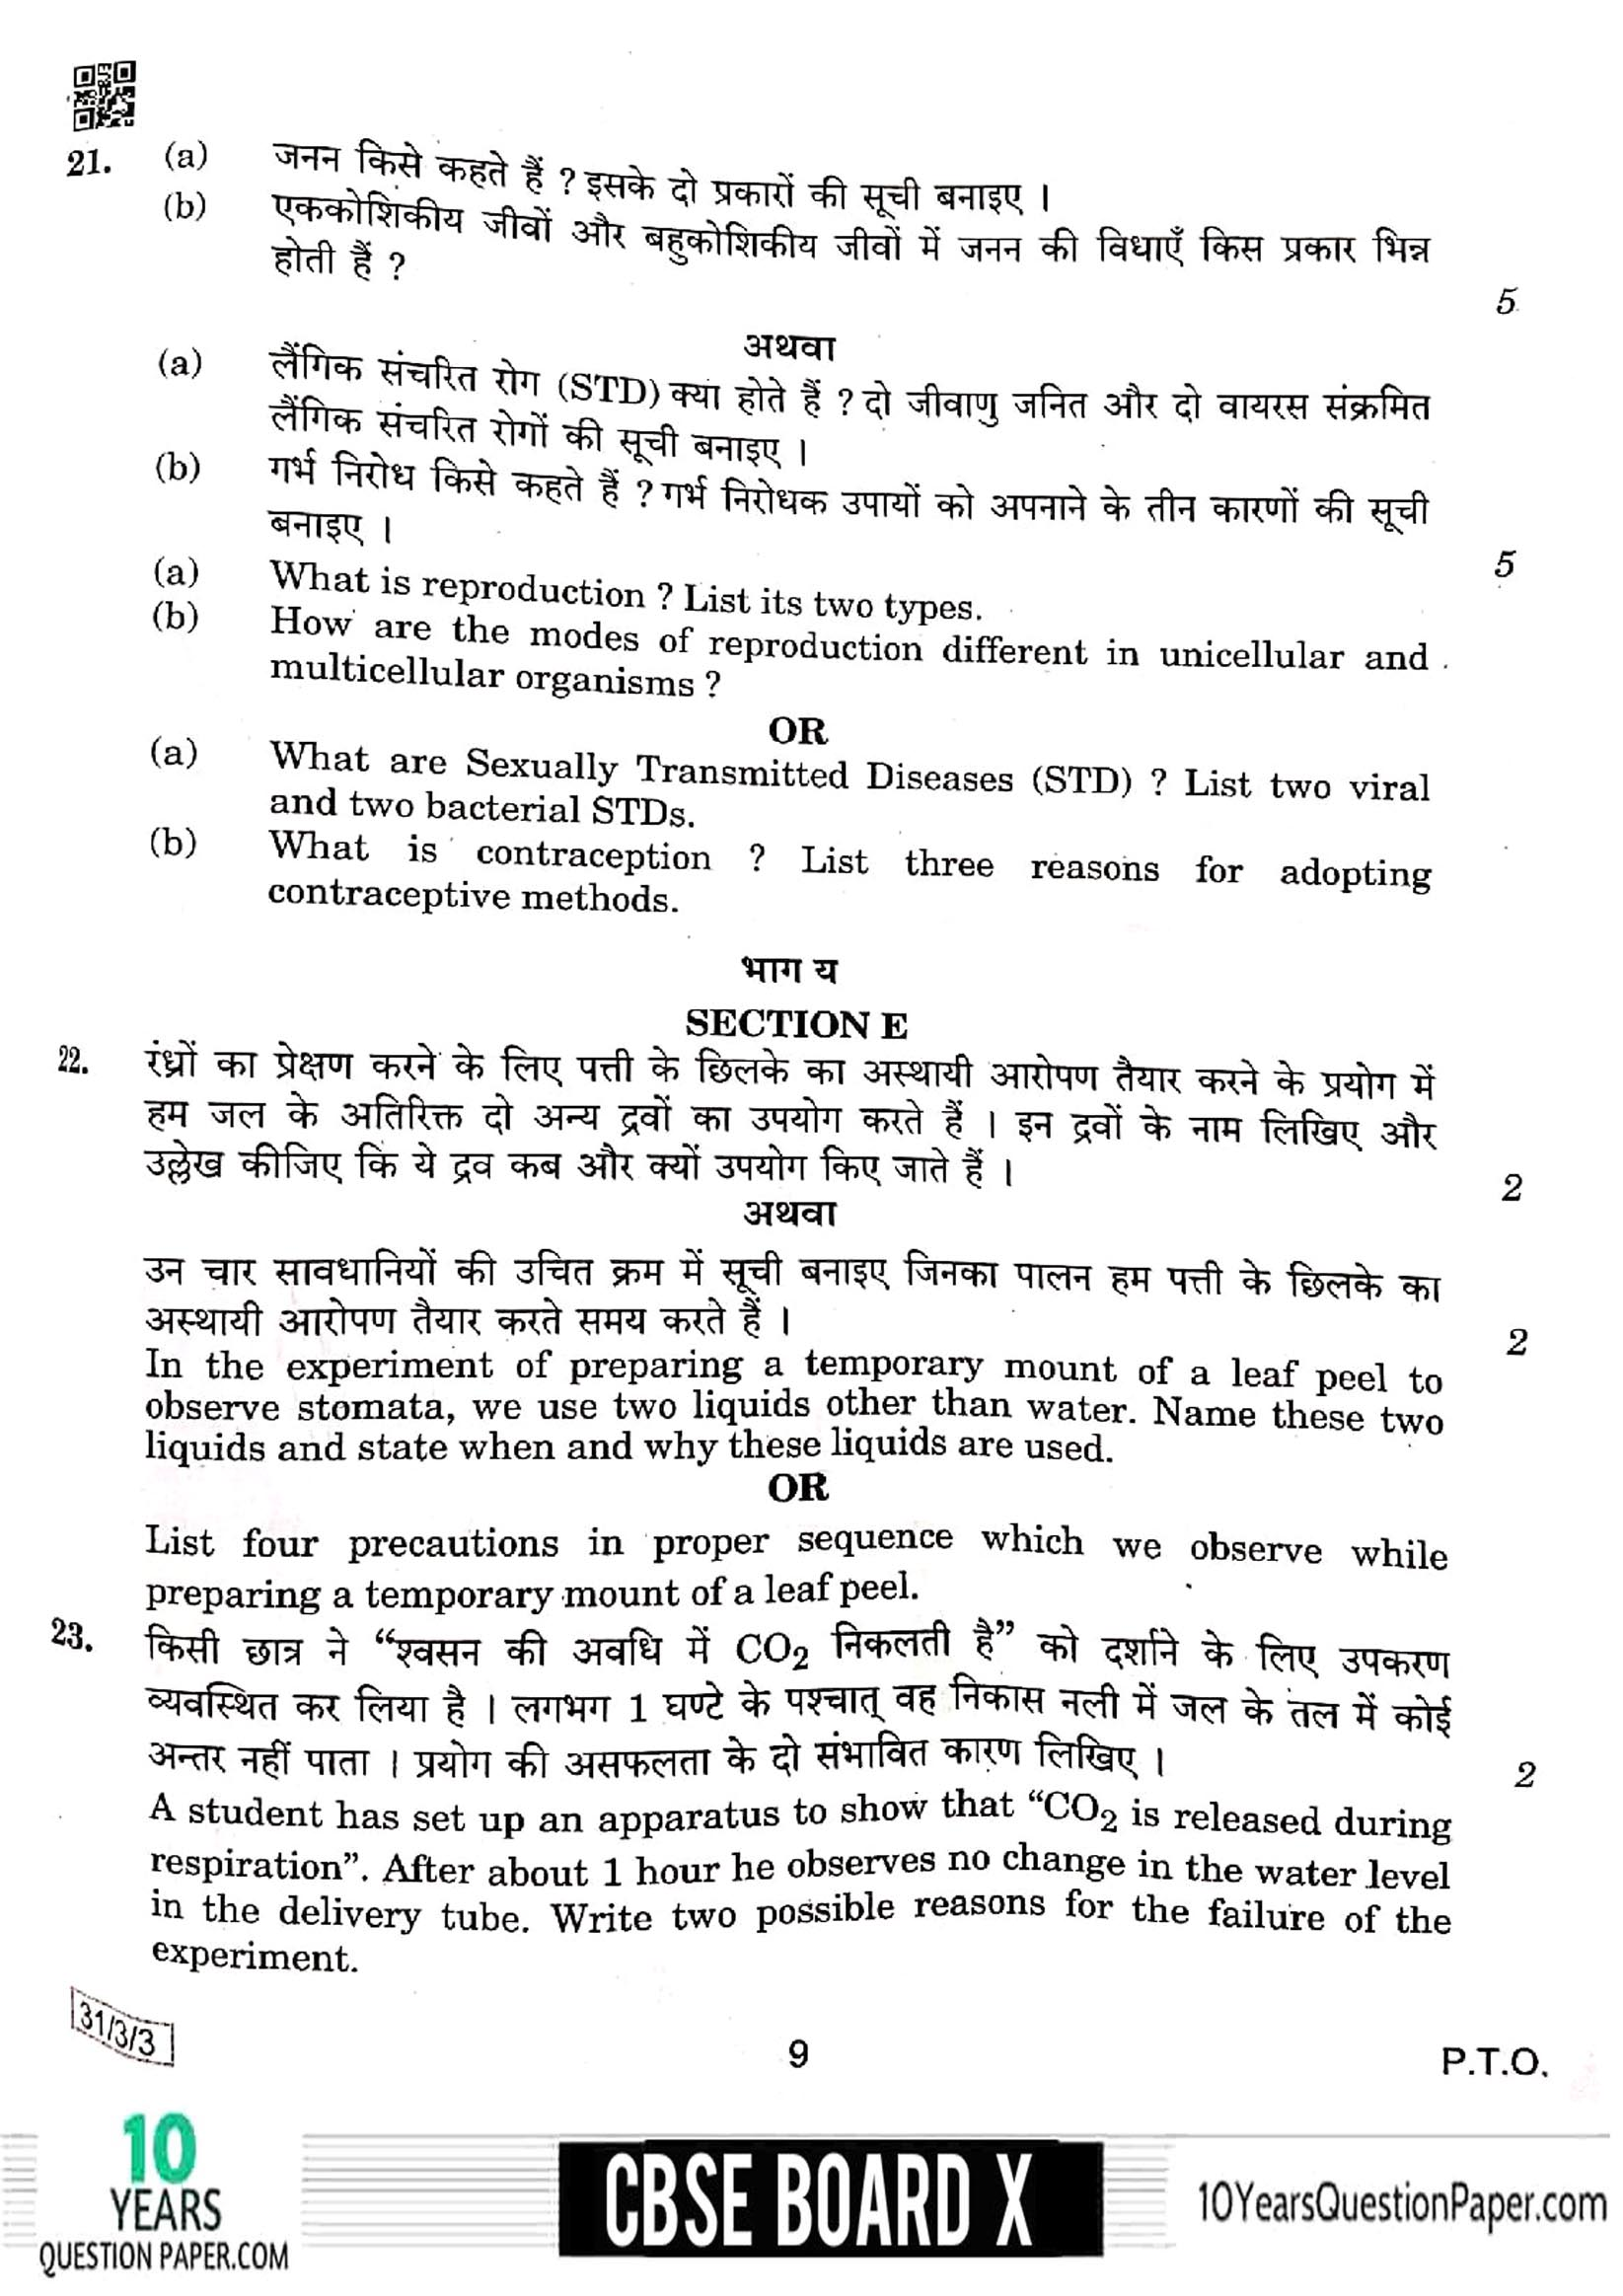 CBSE Class 10 Science 2019 Question Paper